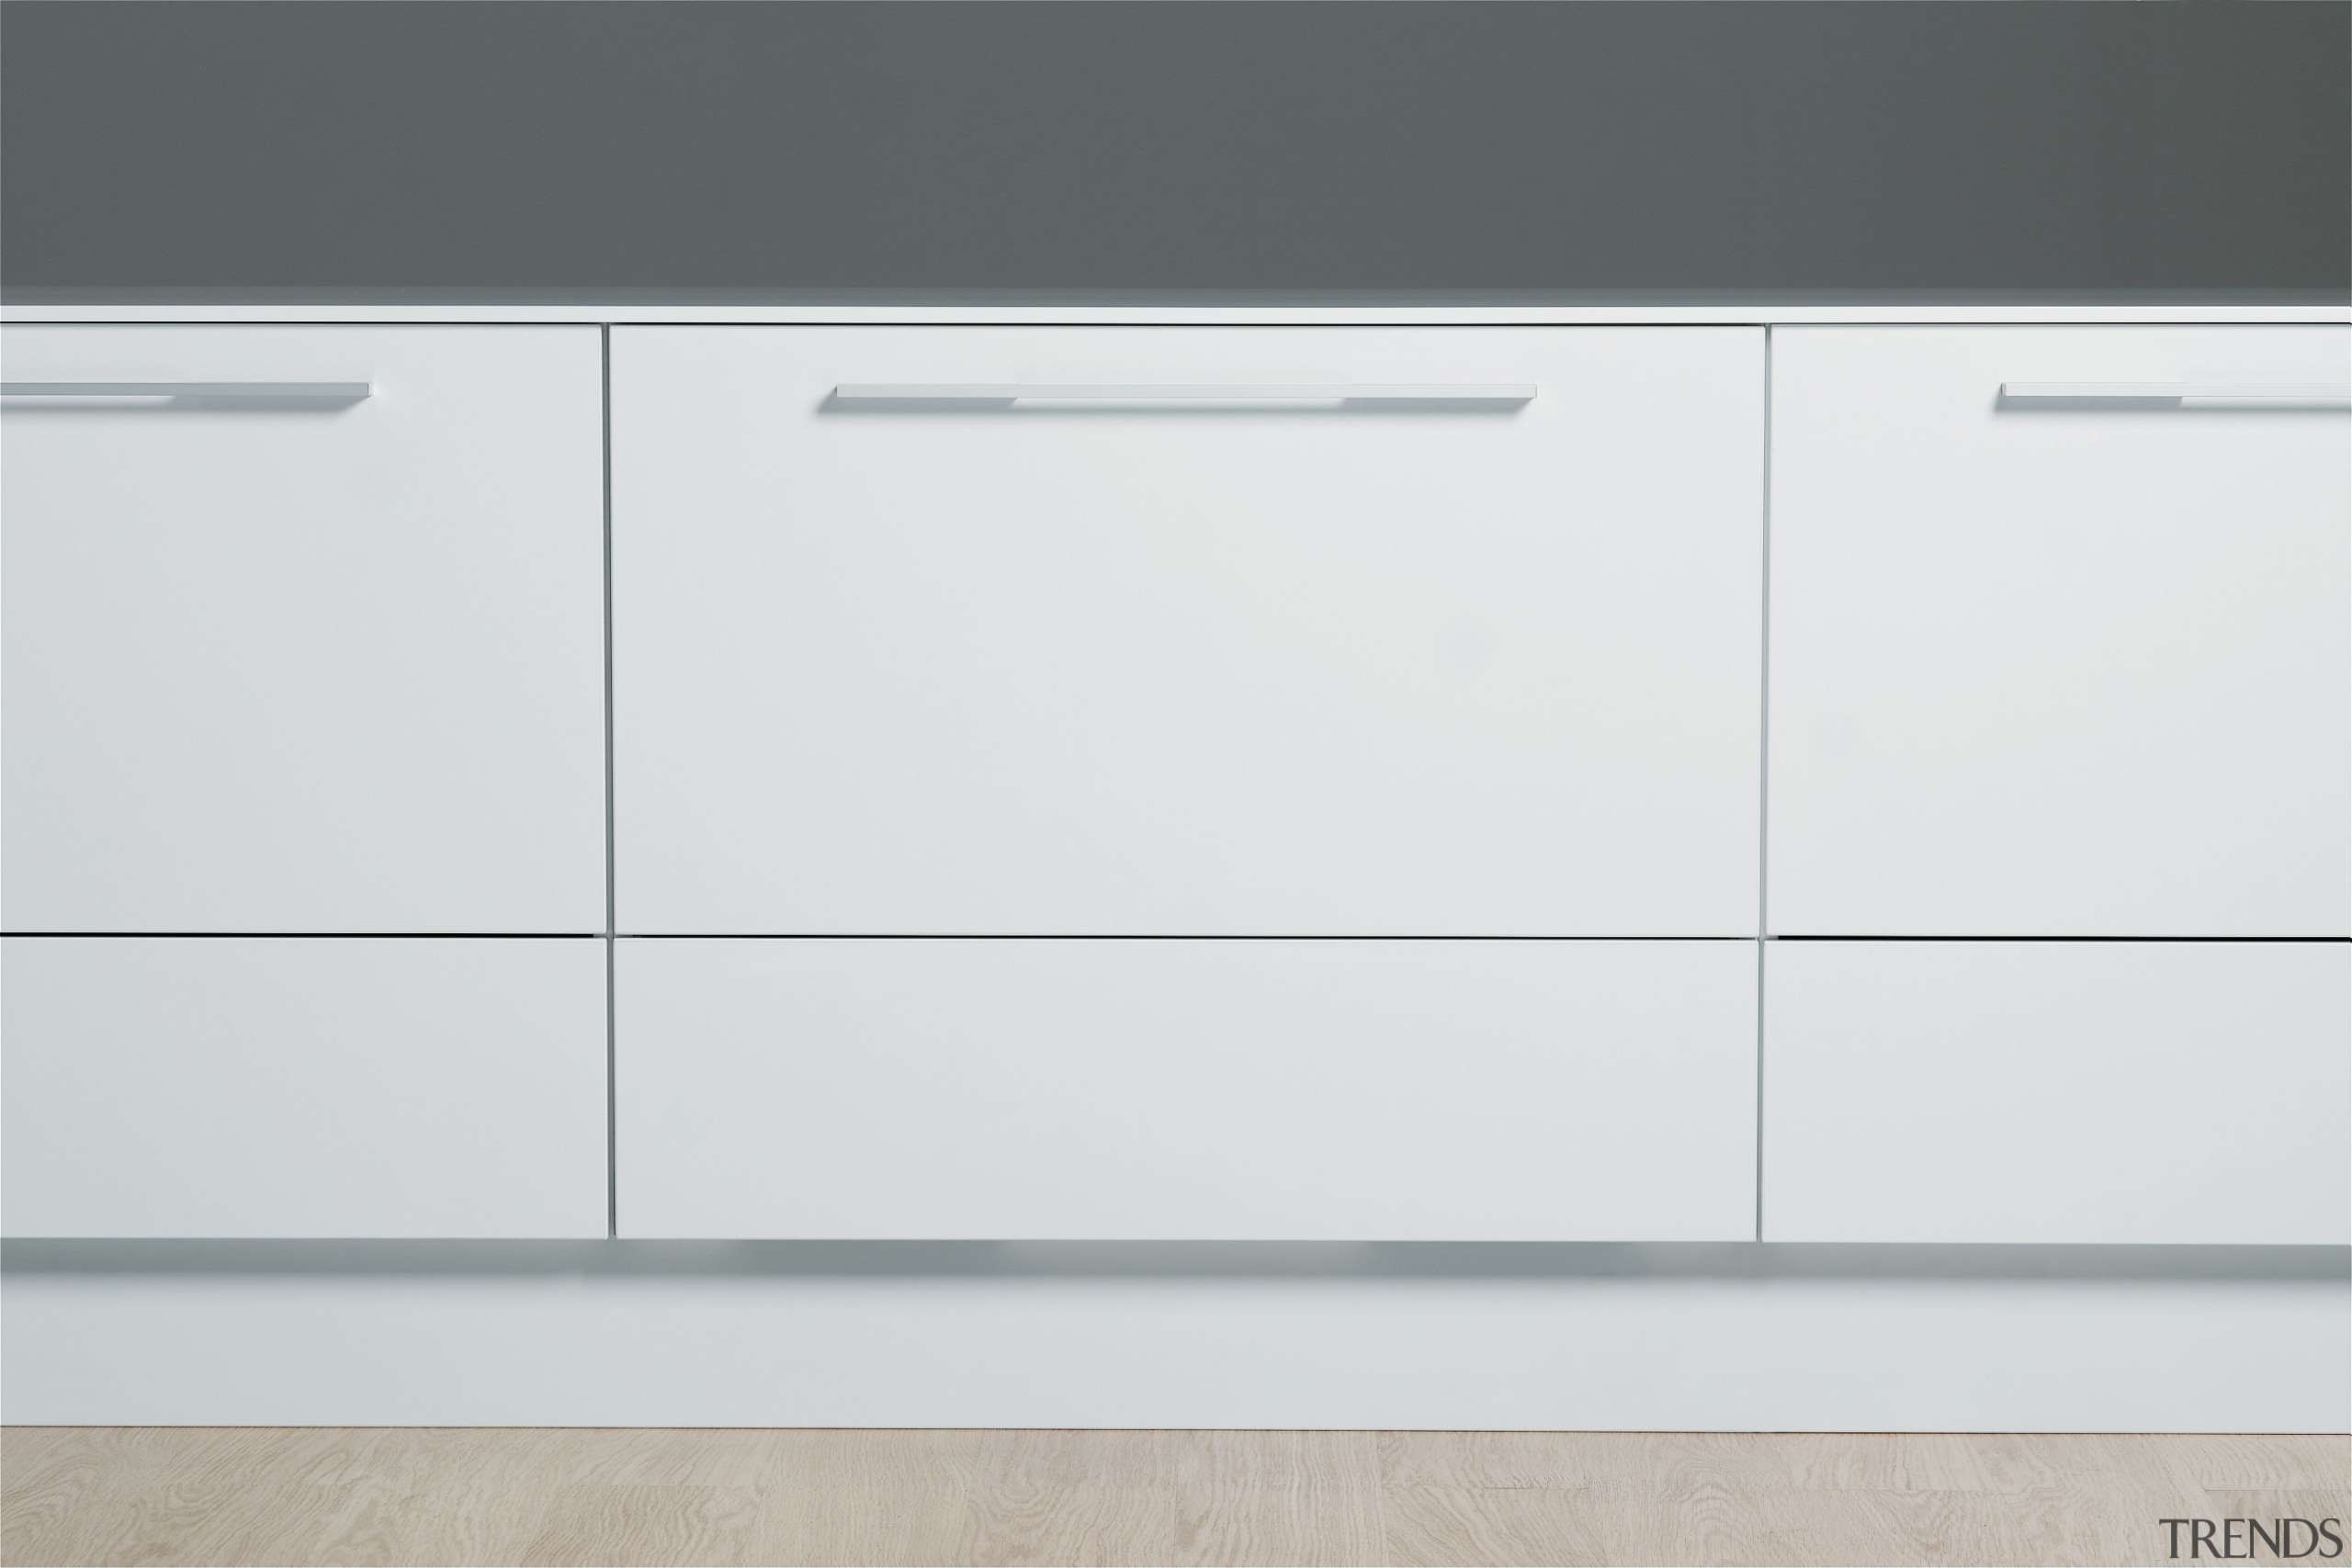 View of kitchen which features Fisher & Paykel's chest of drawers, drawer, furniture, product, product design, sideboard, white, gray